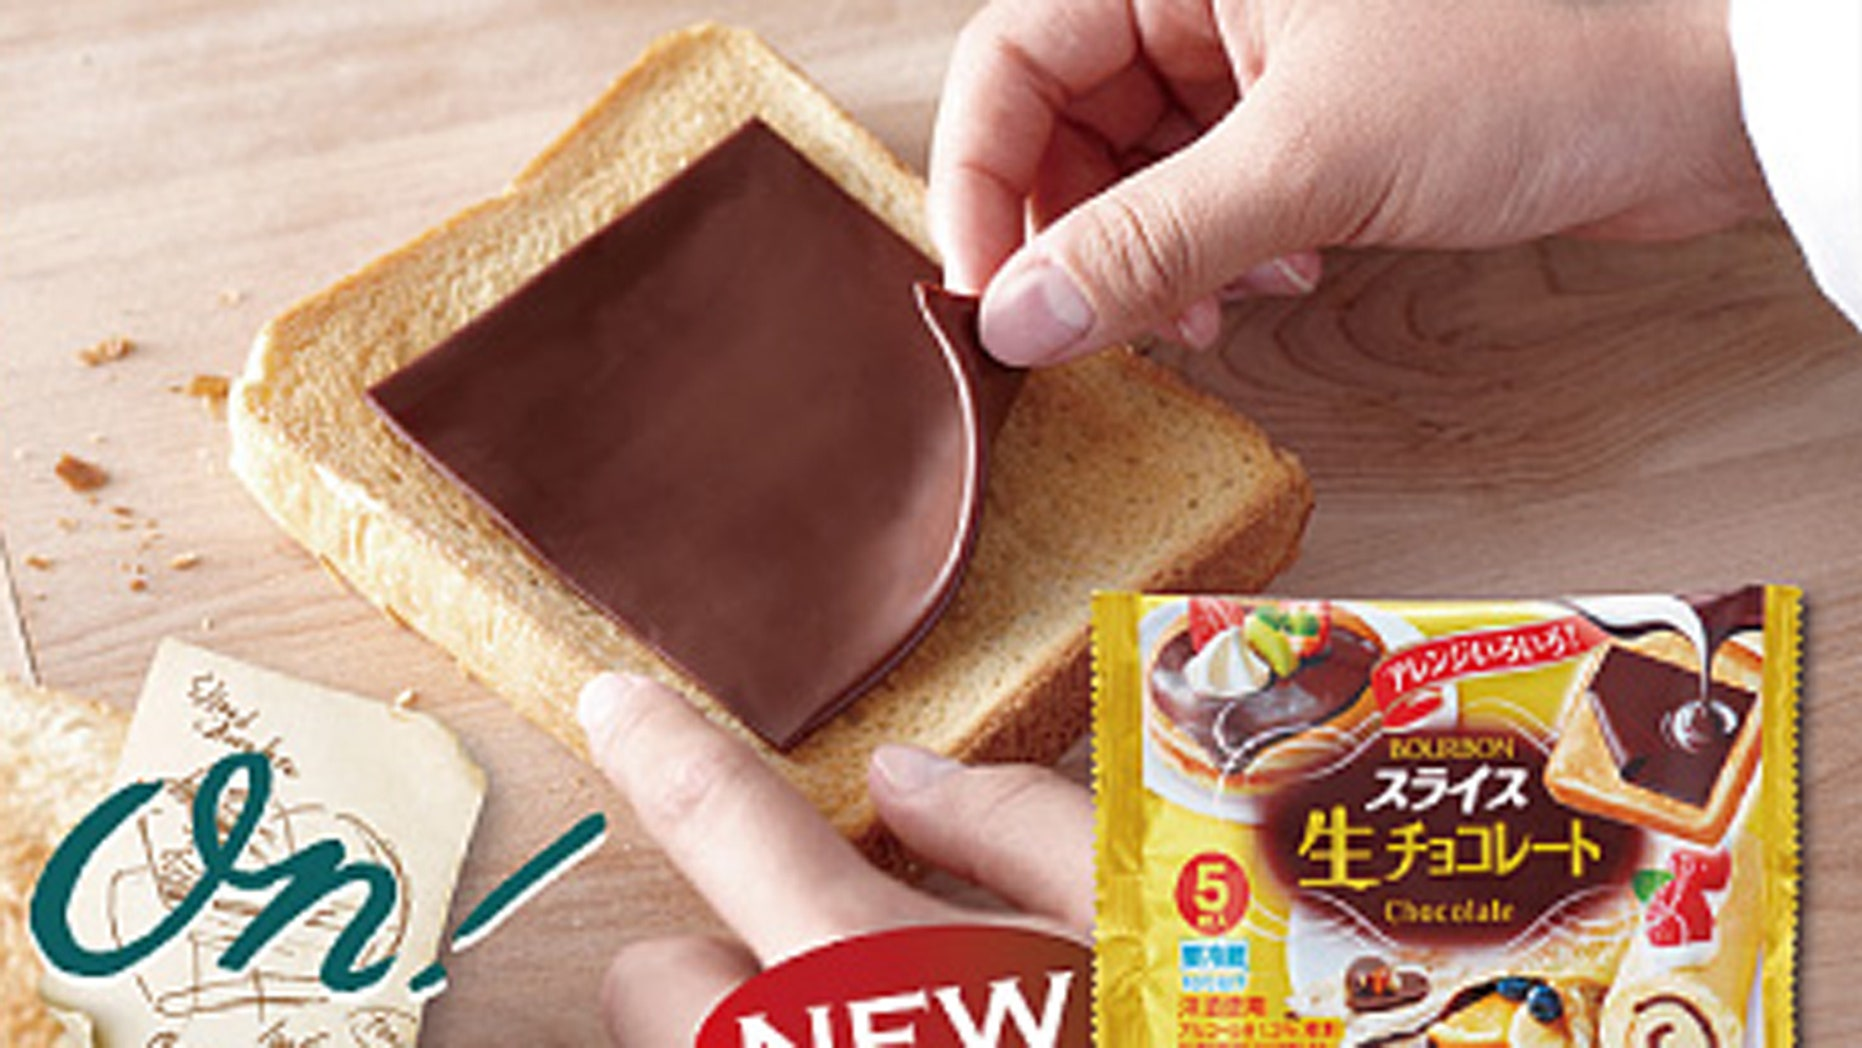 The chocolate slices can used in a variety of ways-- or just eaten plain.